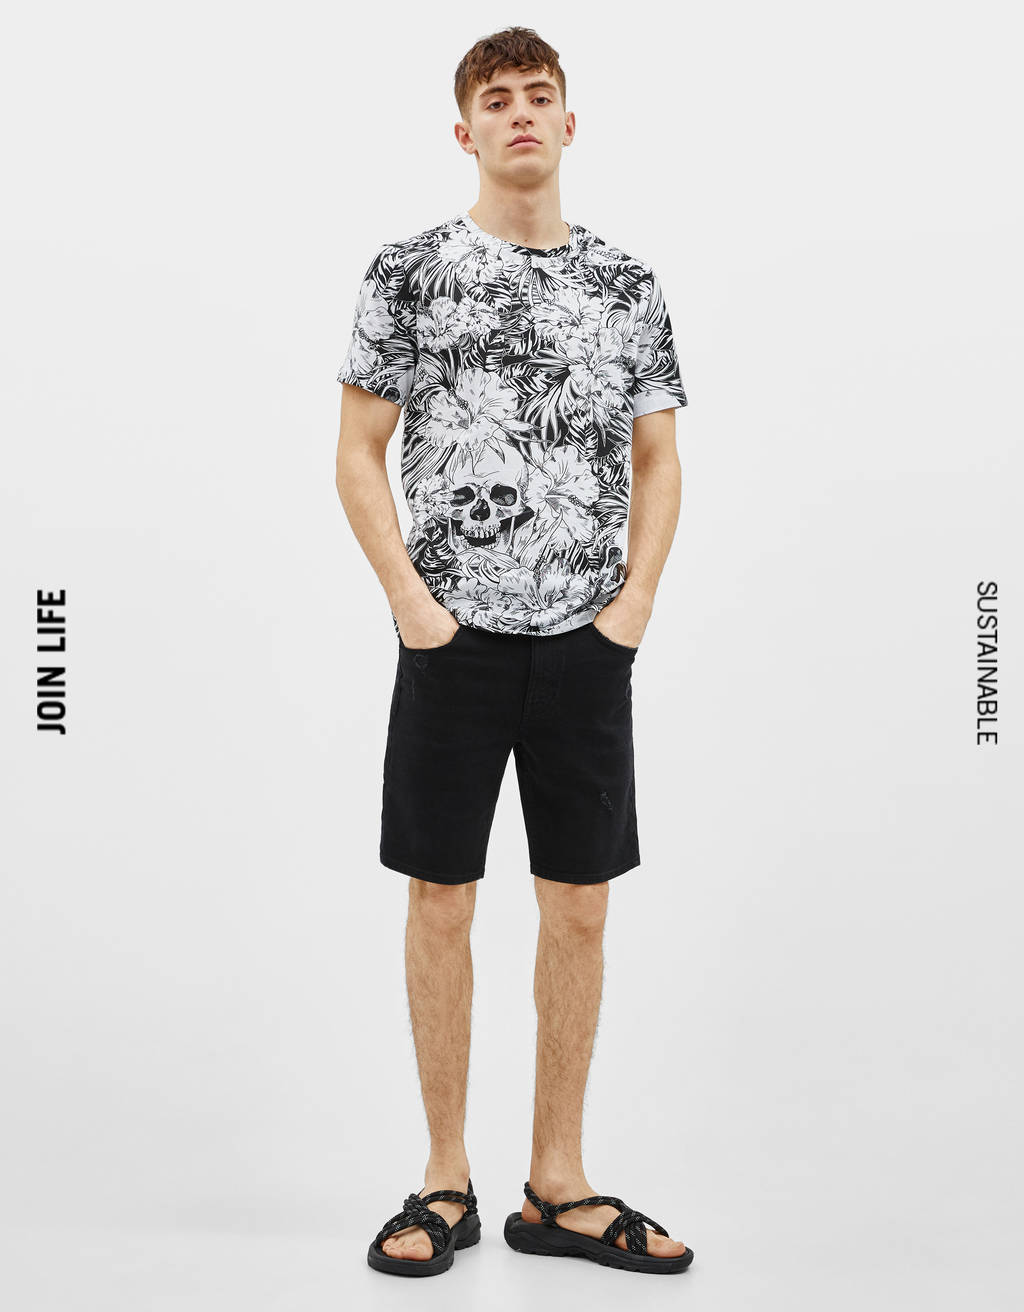 a82fc9716adb T-Shirts - COLLECTION - MEN - Bershka United States